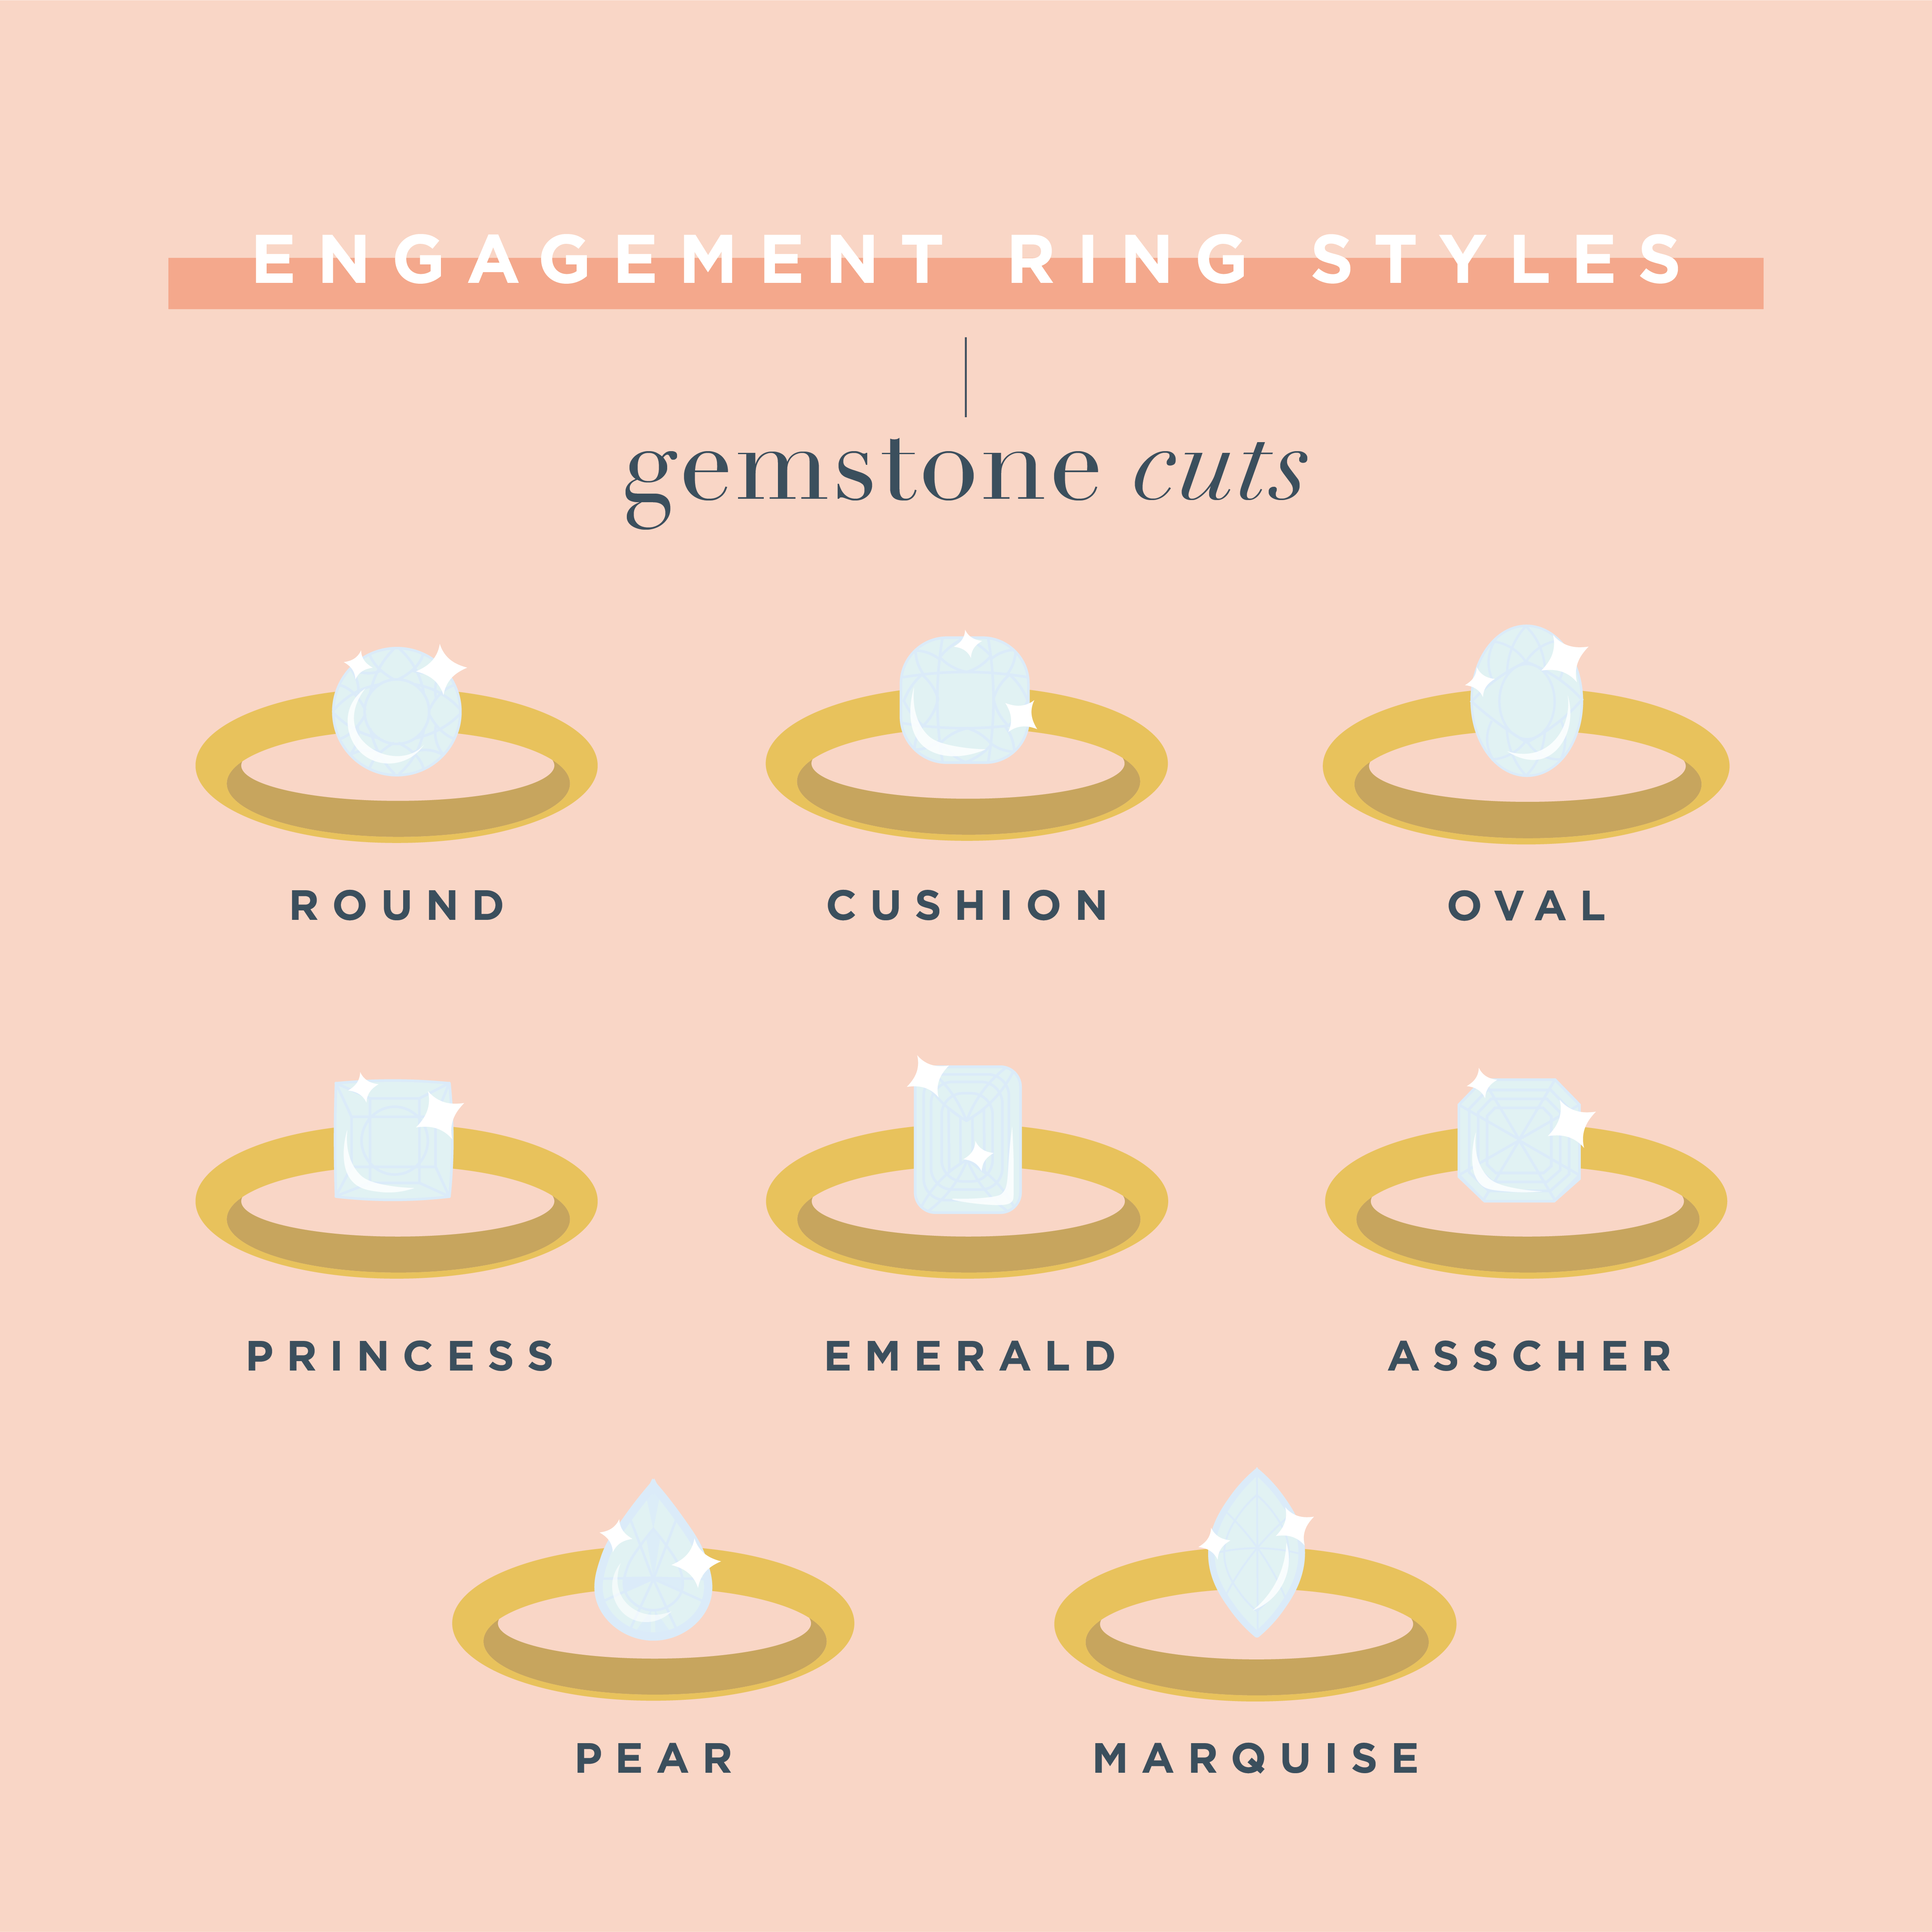 engagement ring styles - gemstone cuts